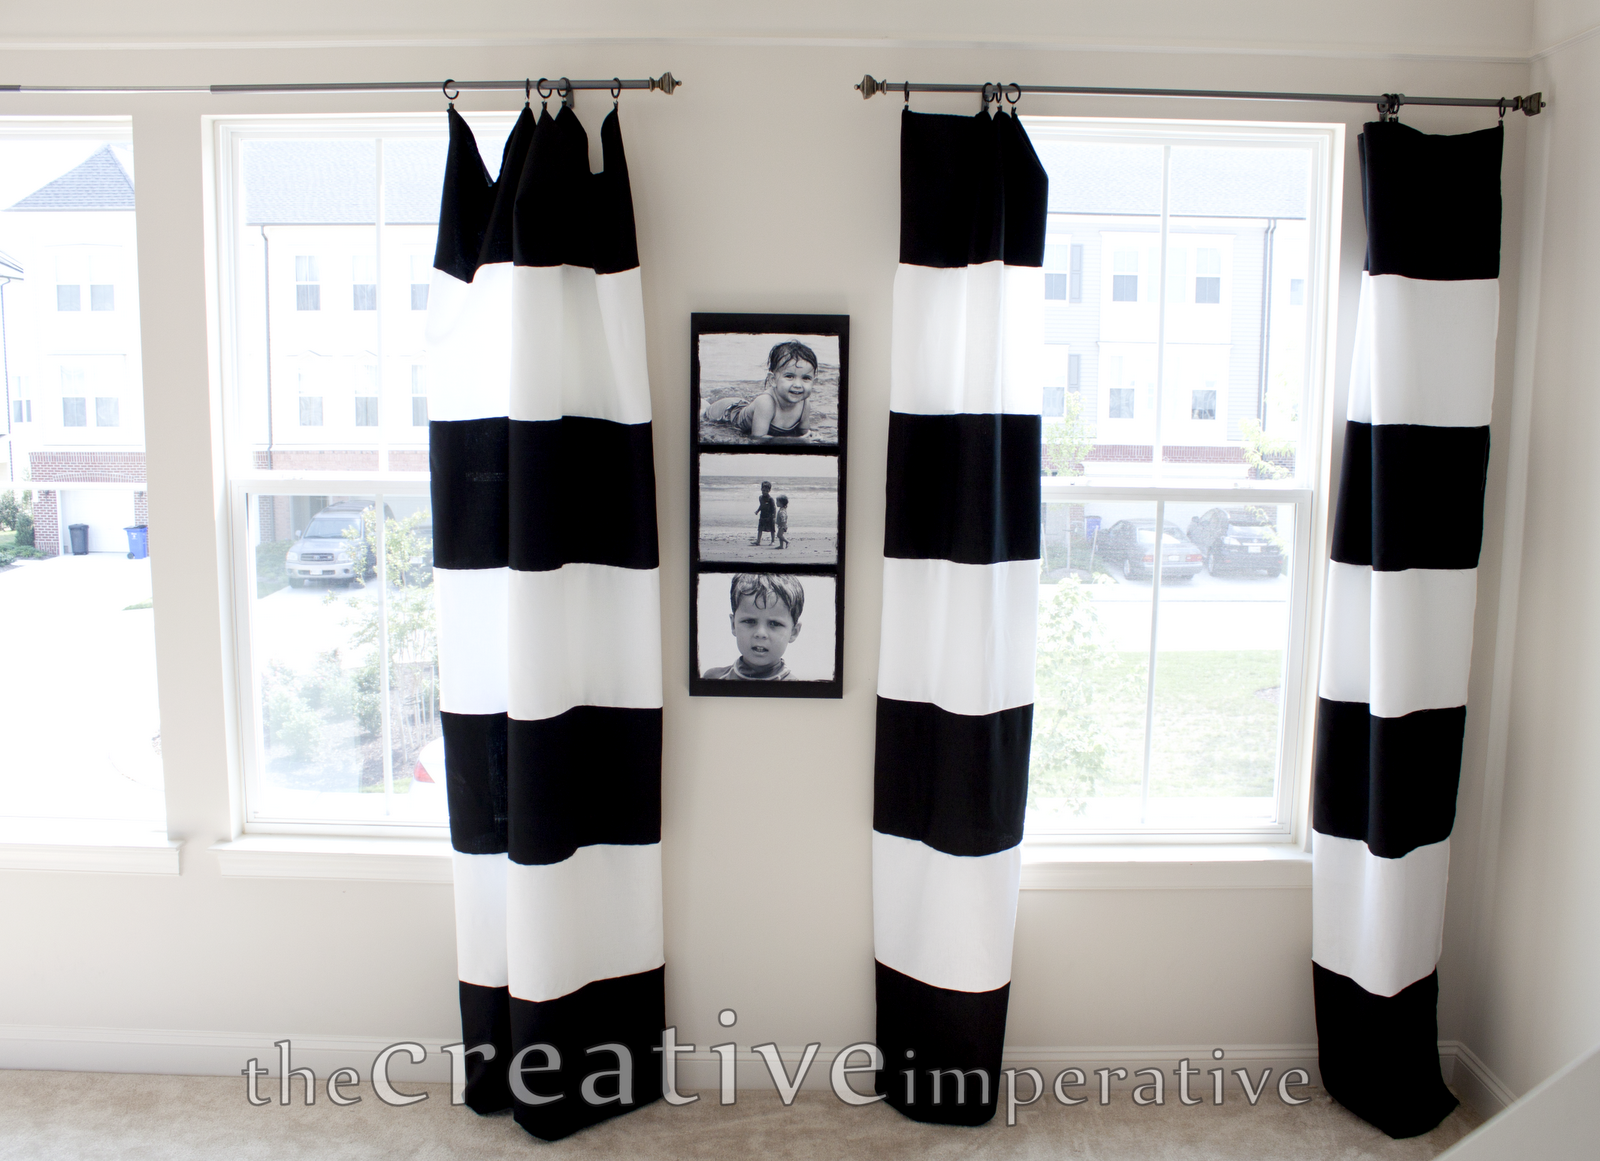 The creative imperative black and white horizontal Bold black and white striped curtains